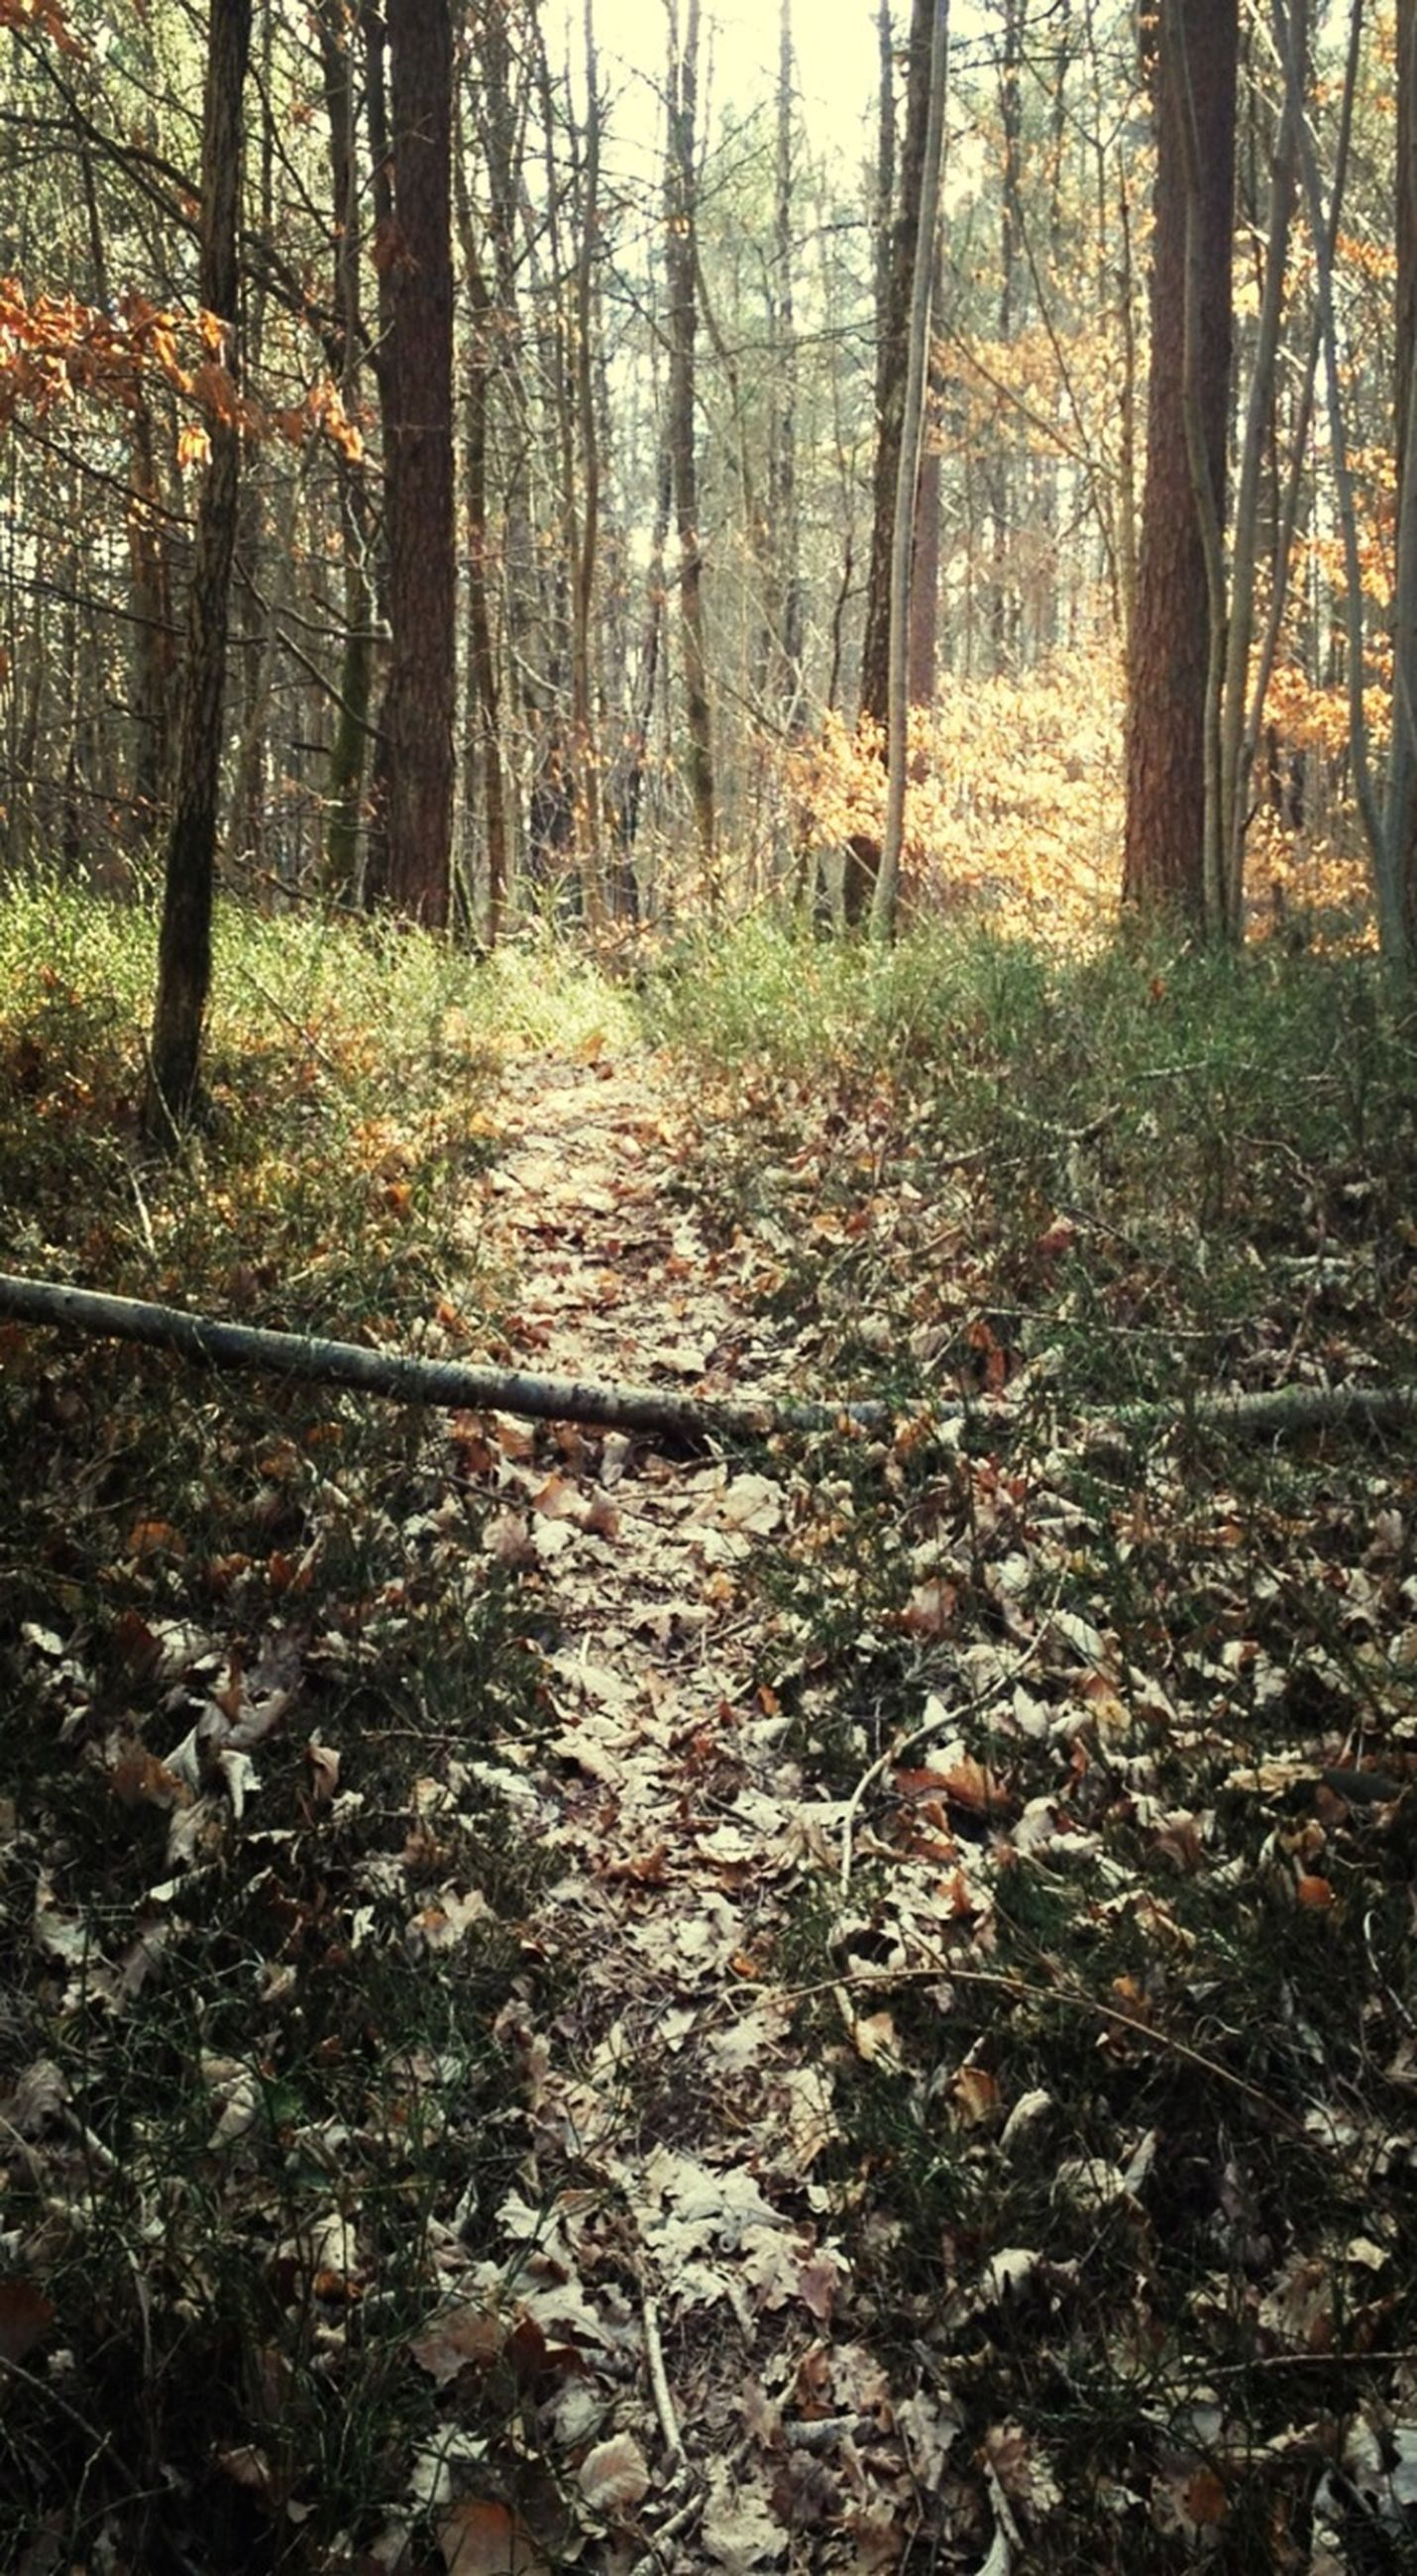 tree, forest, woodland, tranquility, tree trunk, tranquil scene, nature, the way forward, growth, beauty in nature, non-urban scene, scenics, dirt road, landscape, autumn, day, woods, outdoors, branch, no people